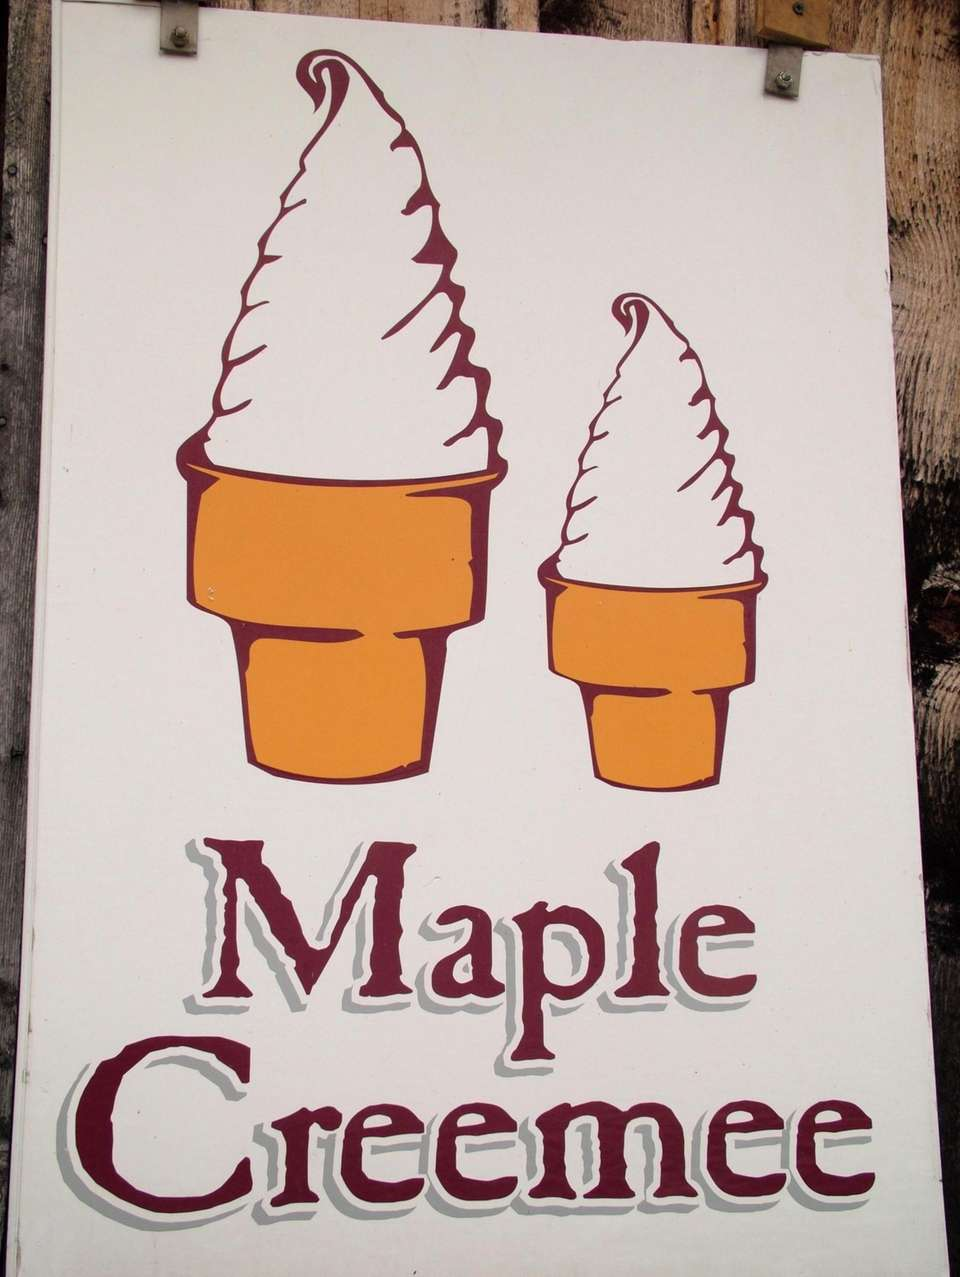 The Maple Creemee, a maple-flavored frozen custard, is